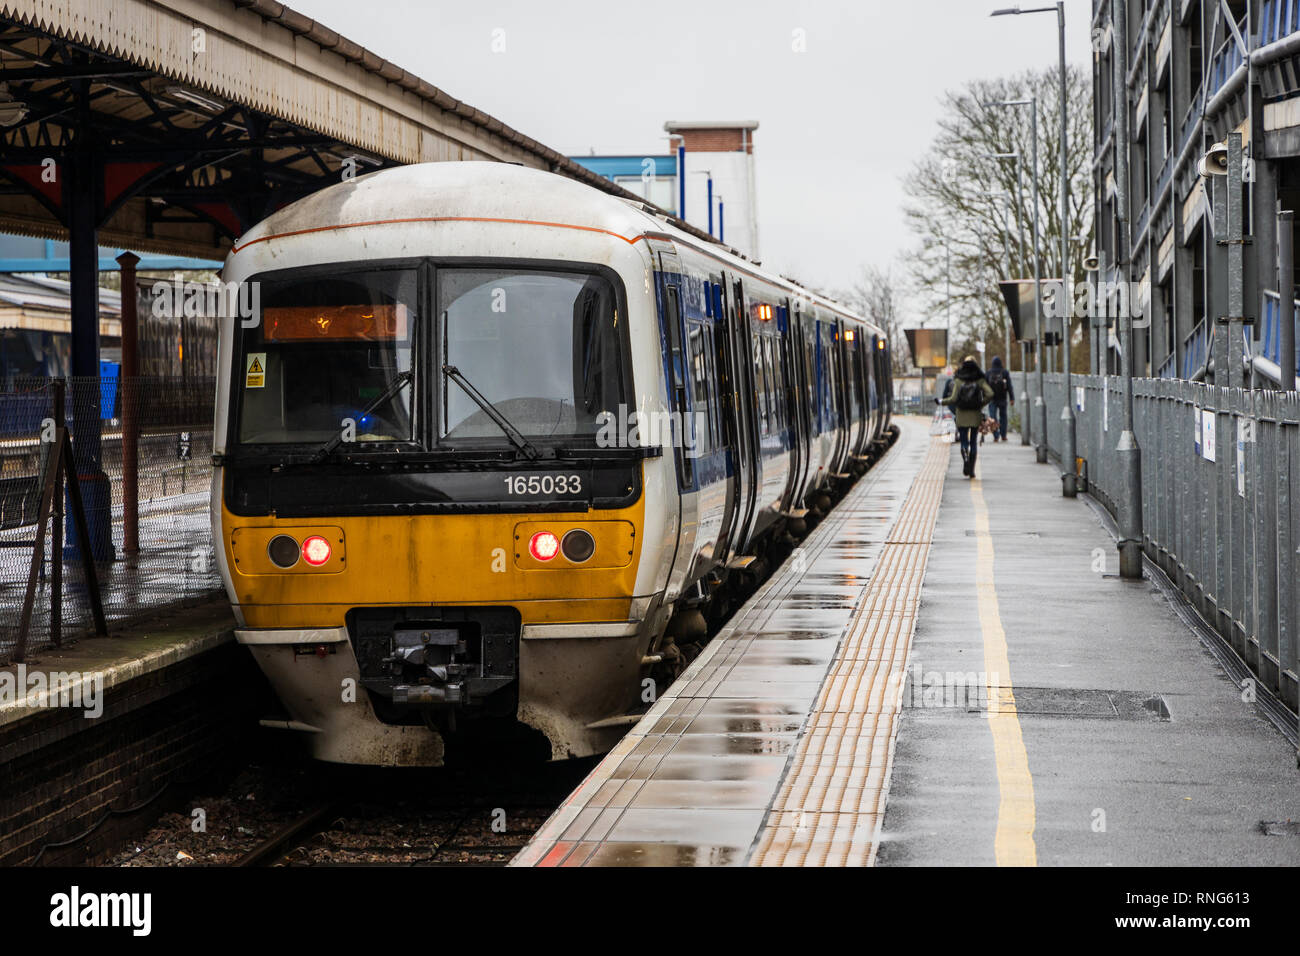 Commuters are running on a platform to a Chiltern Railways train from High Wycombe station to London during rush hour on a rainy winter morning - Stock Image